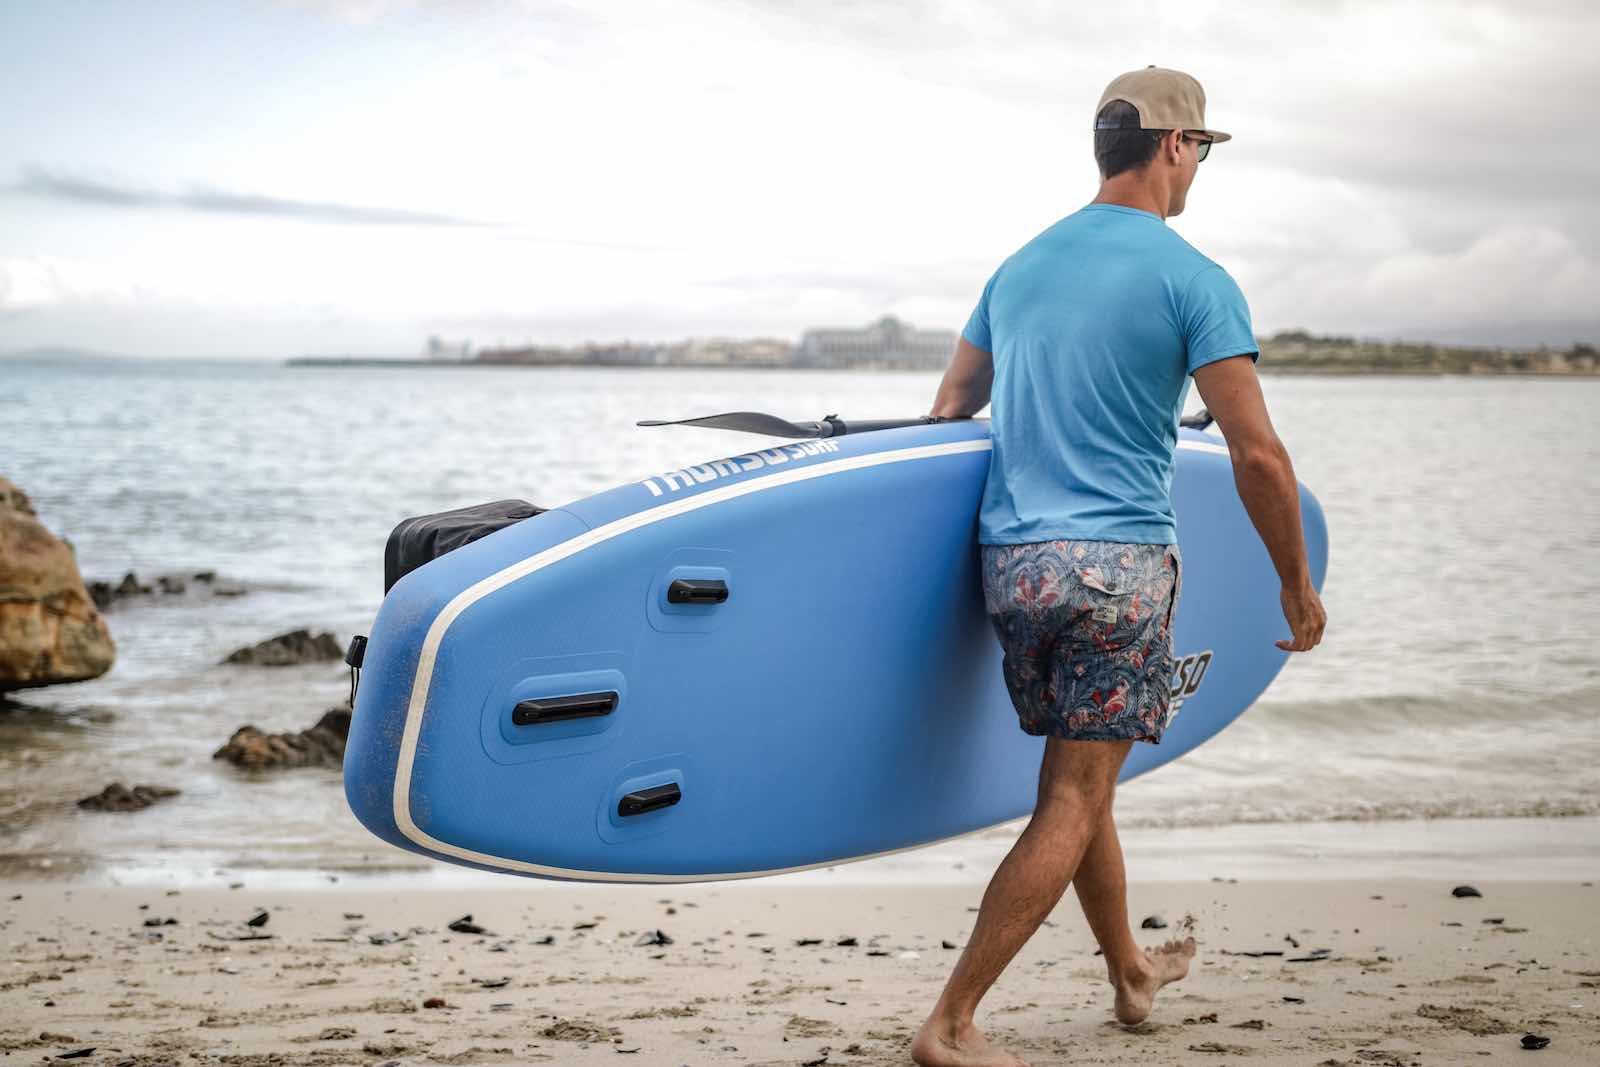 The Best Beach Body Workout That You Can Do on Your SUP